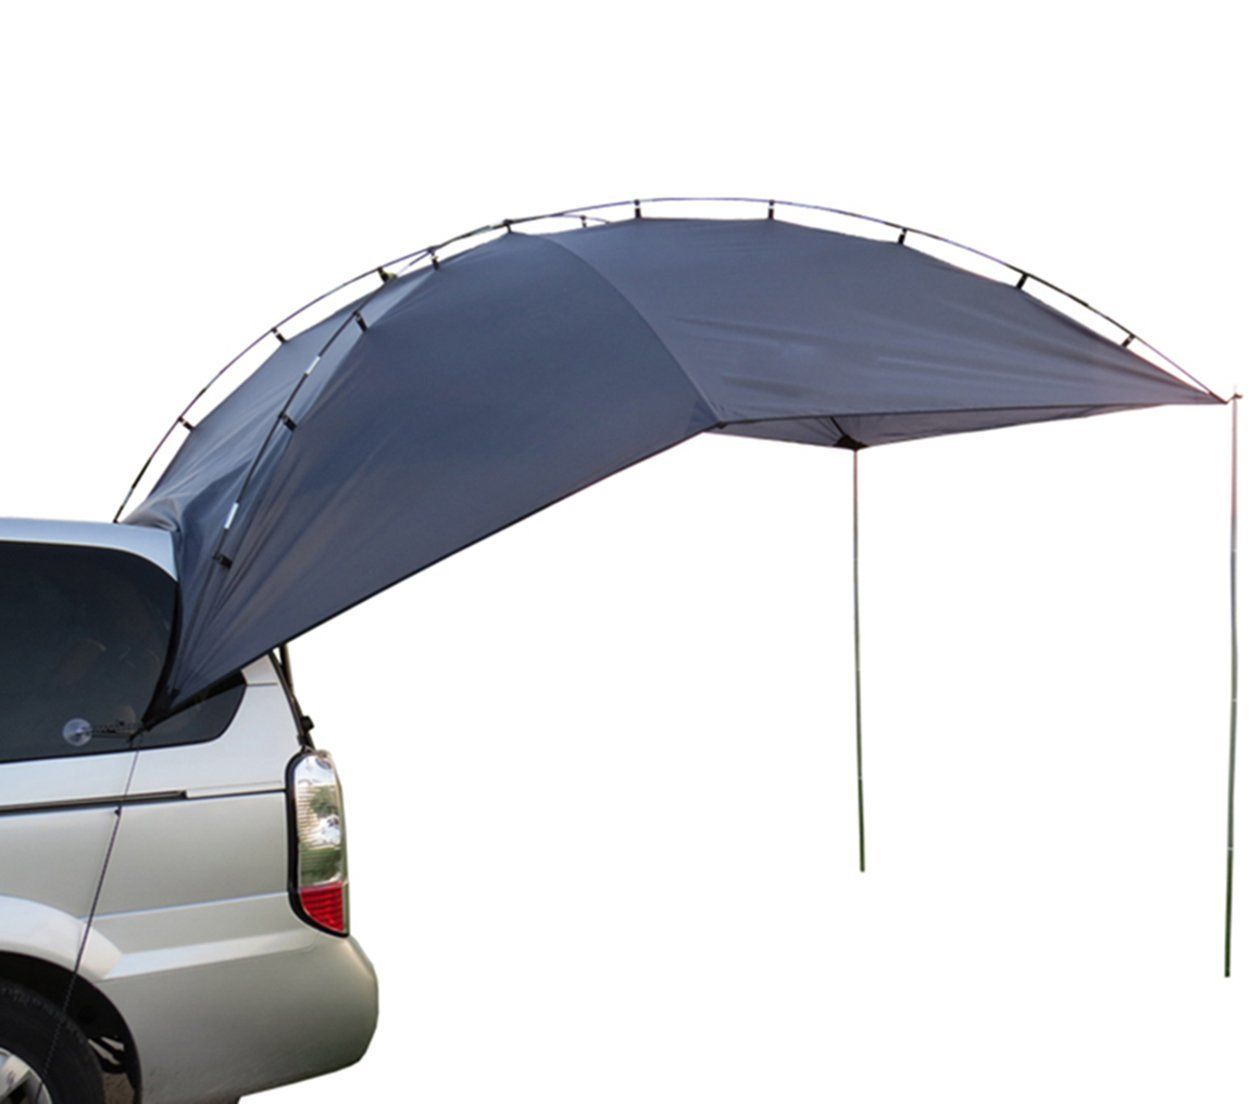 Hasika Awning C&er Trailer Roof Top Family Tent for Beach C&ing SUV MPV Hatchback  sc 1 st  Pinterest : cheap family tents - memphite.com